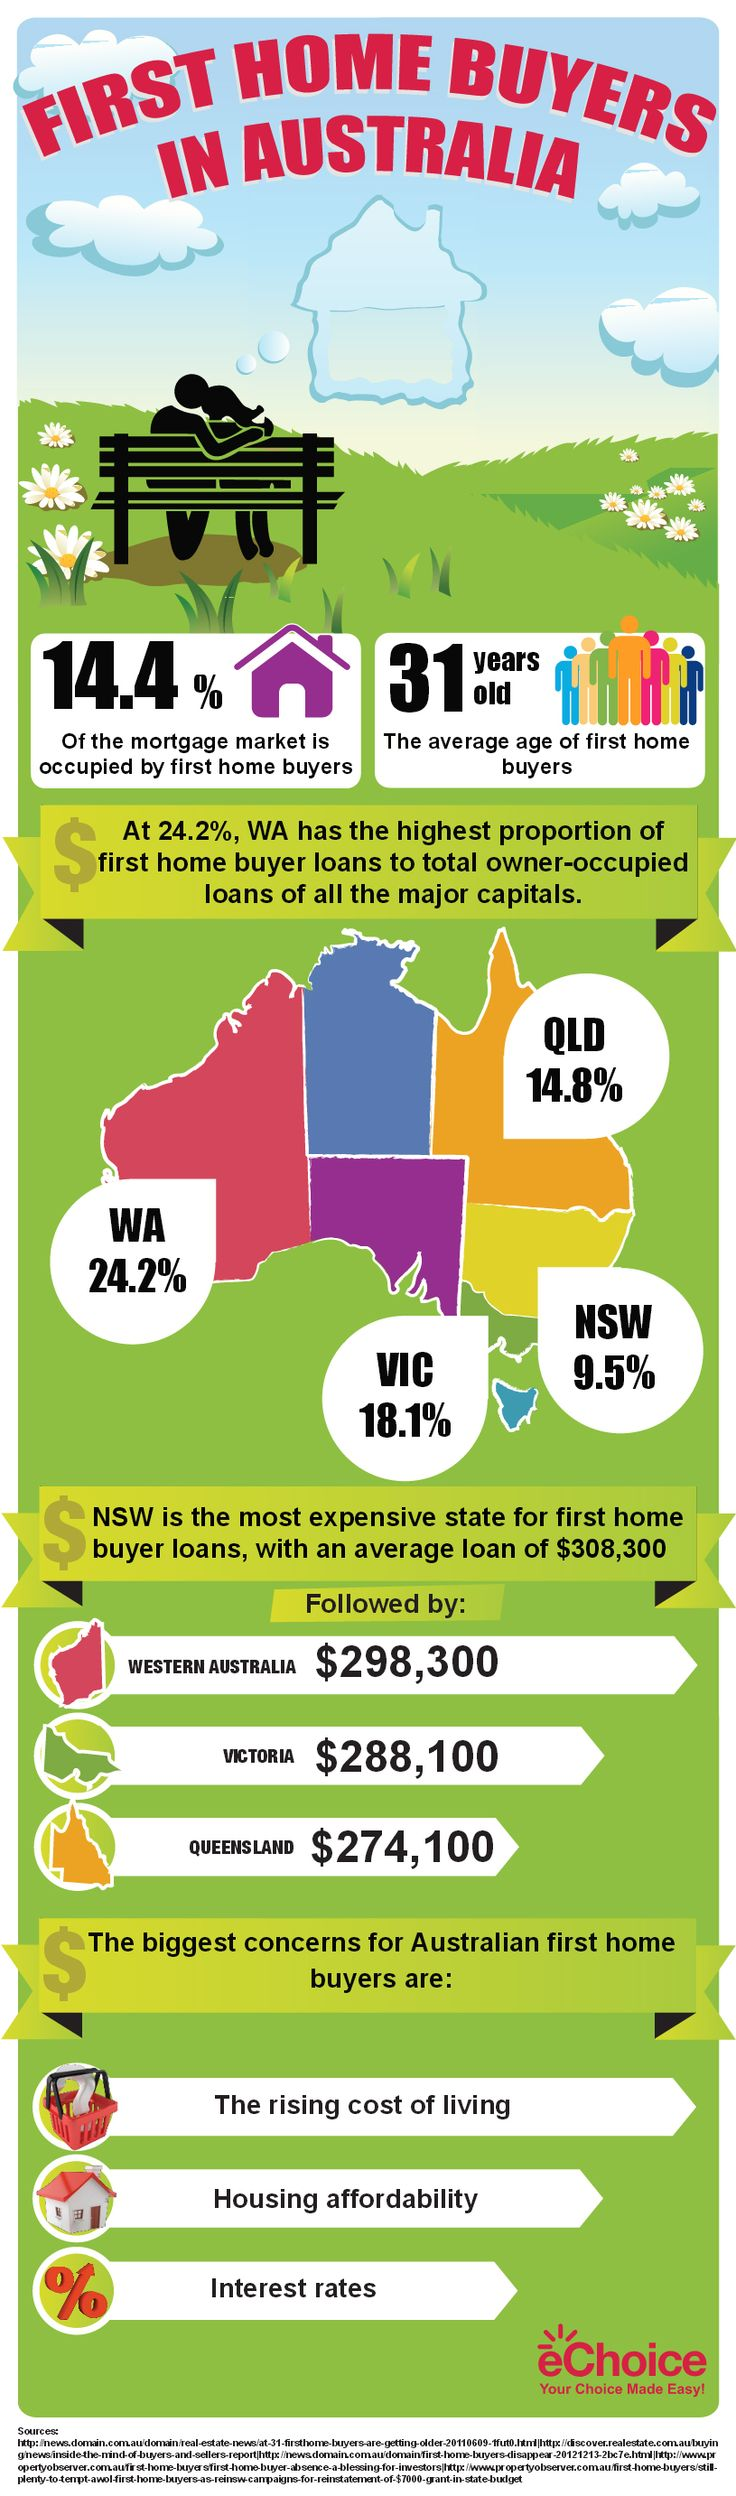 First Home Buyers in Australia